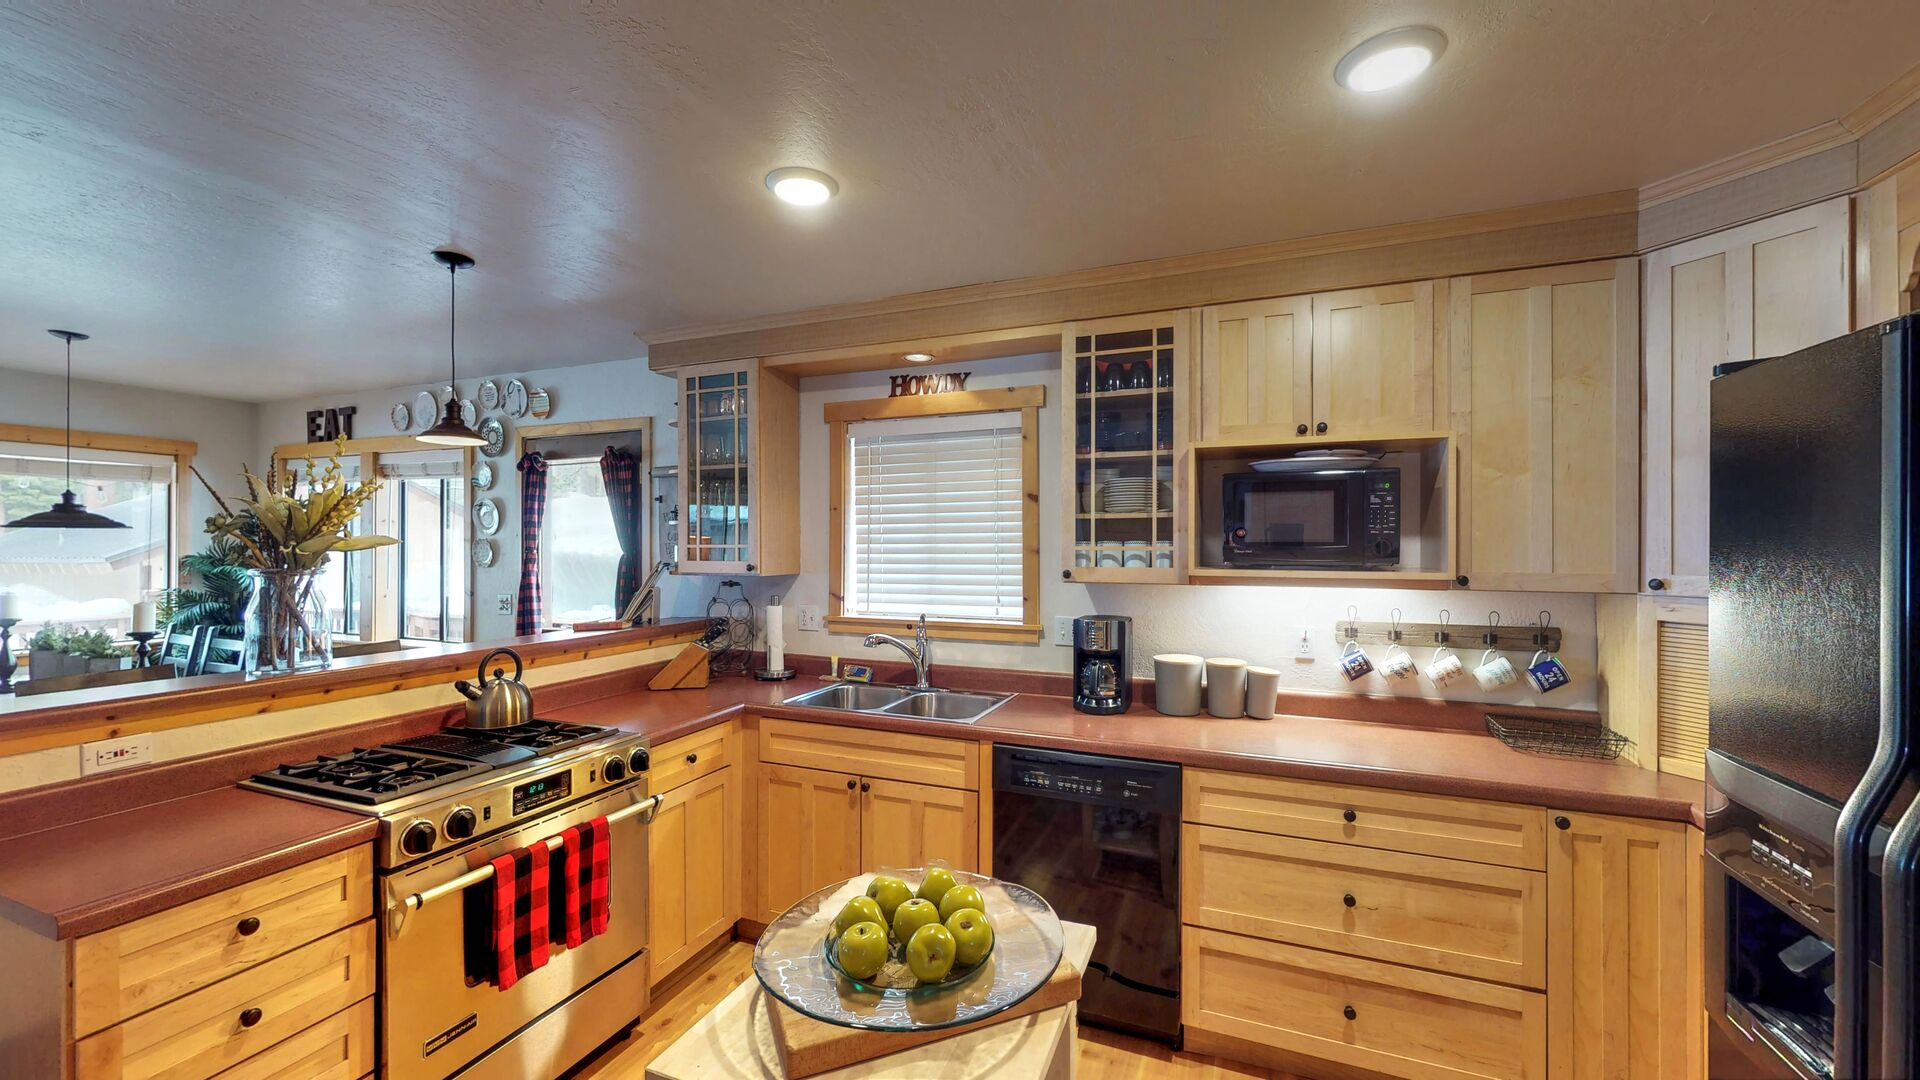 Kitchen Features Plenty of Counter Space